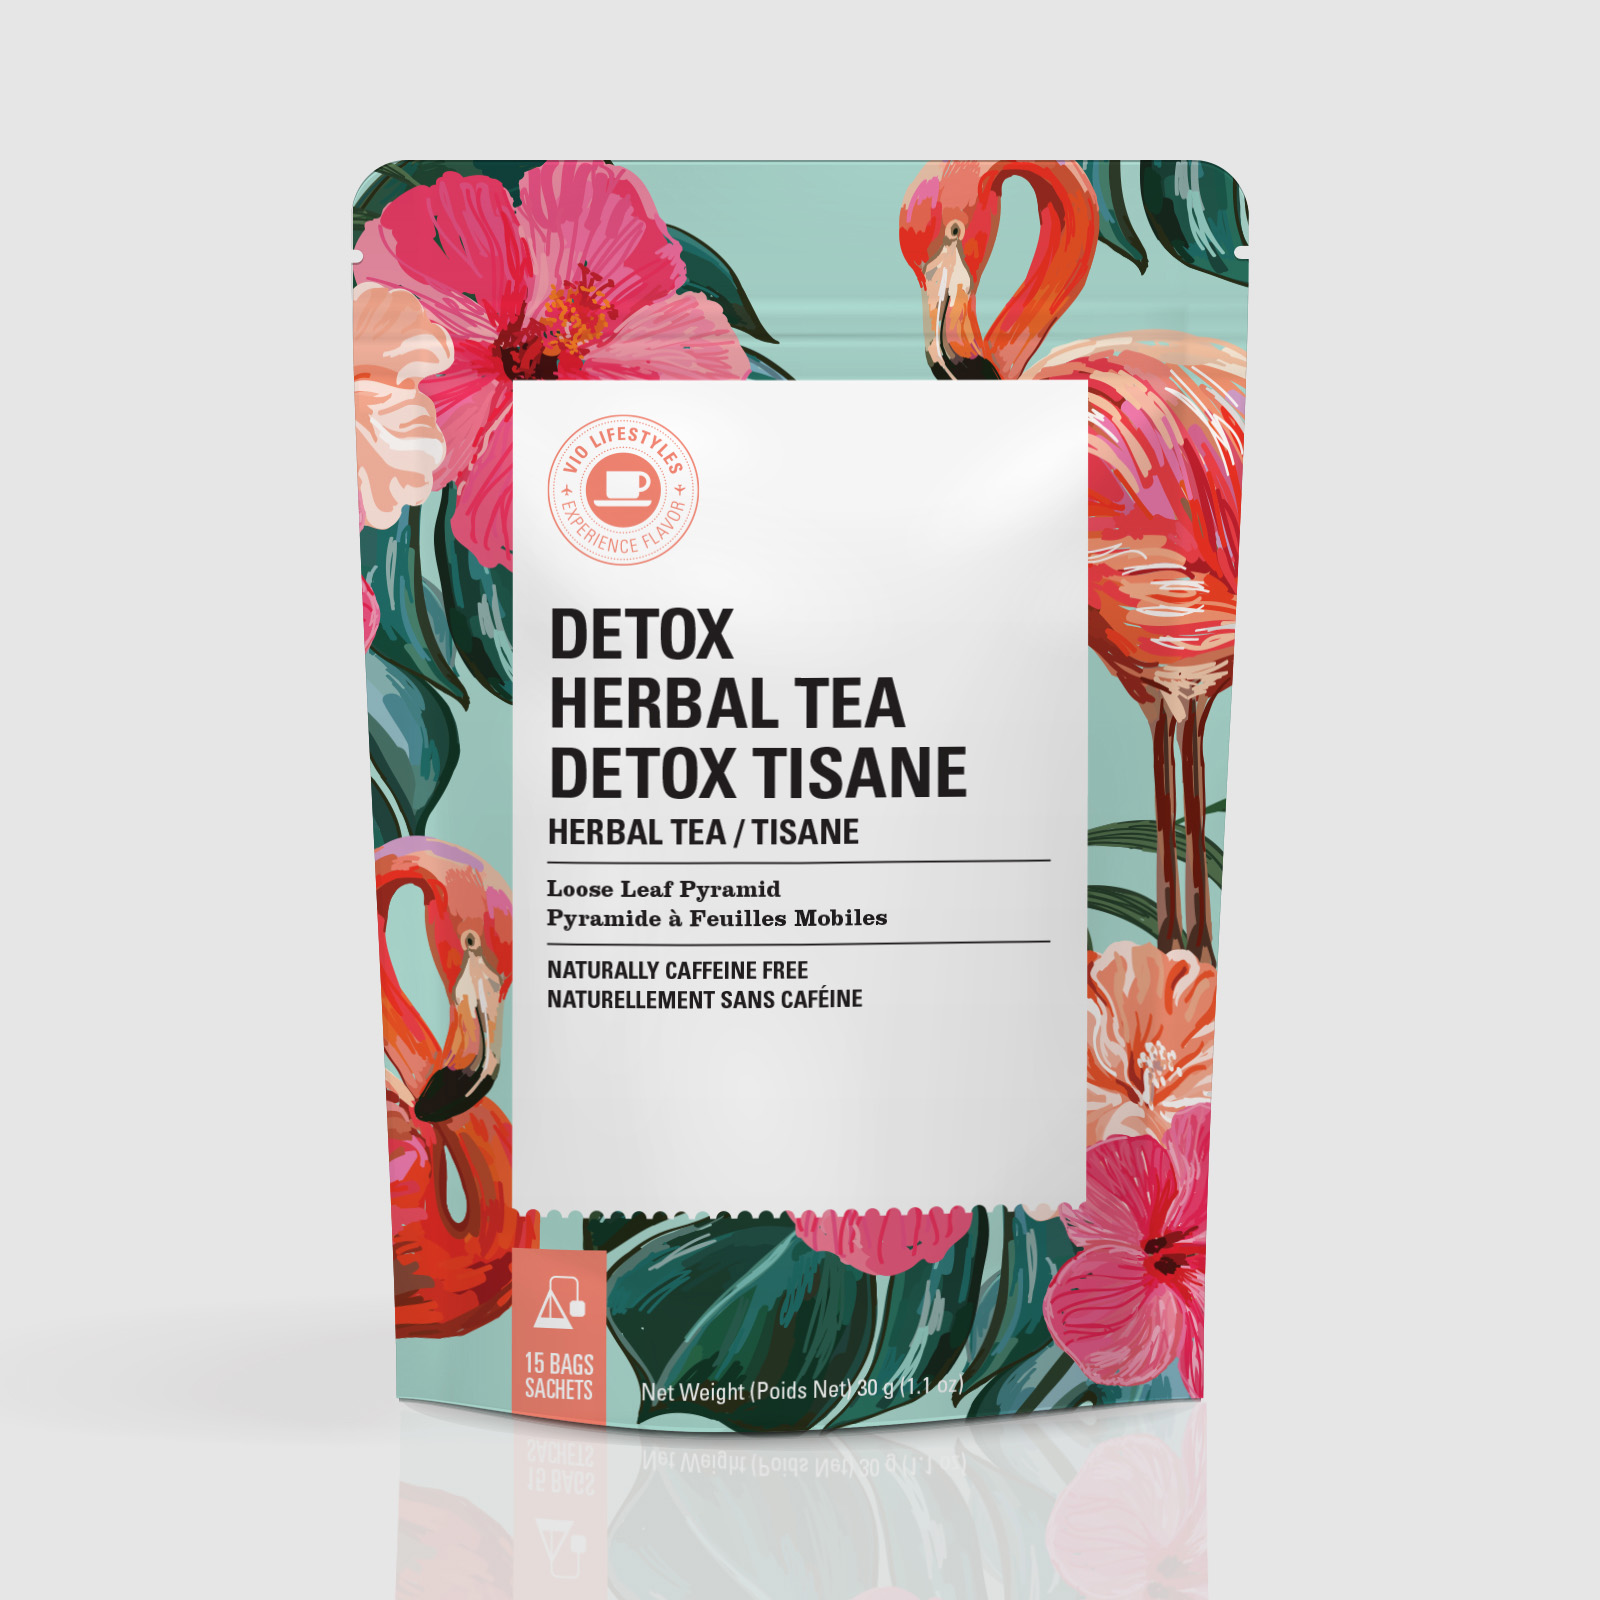 Vio_Product_DetoxHerbal_Front_grey.jpg